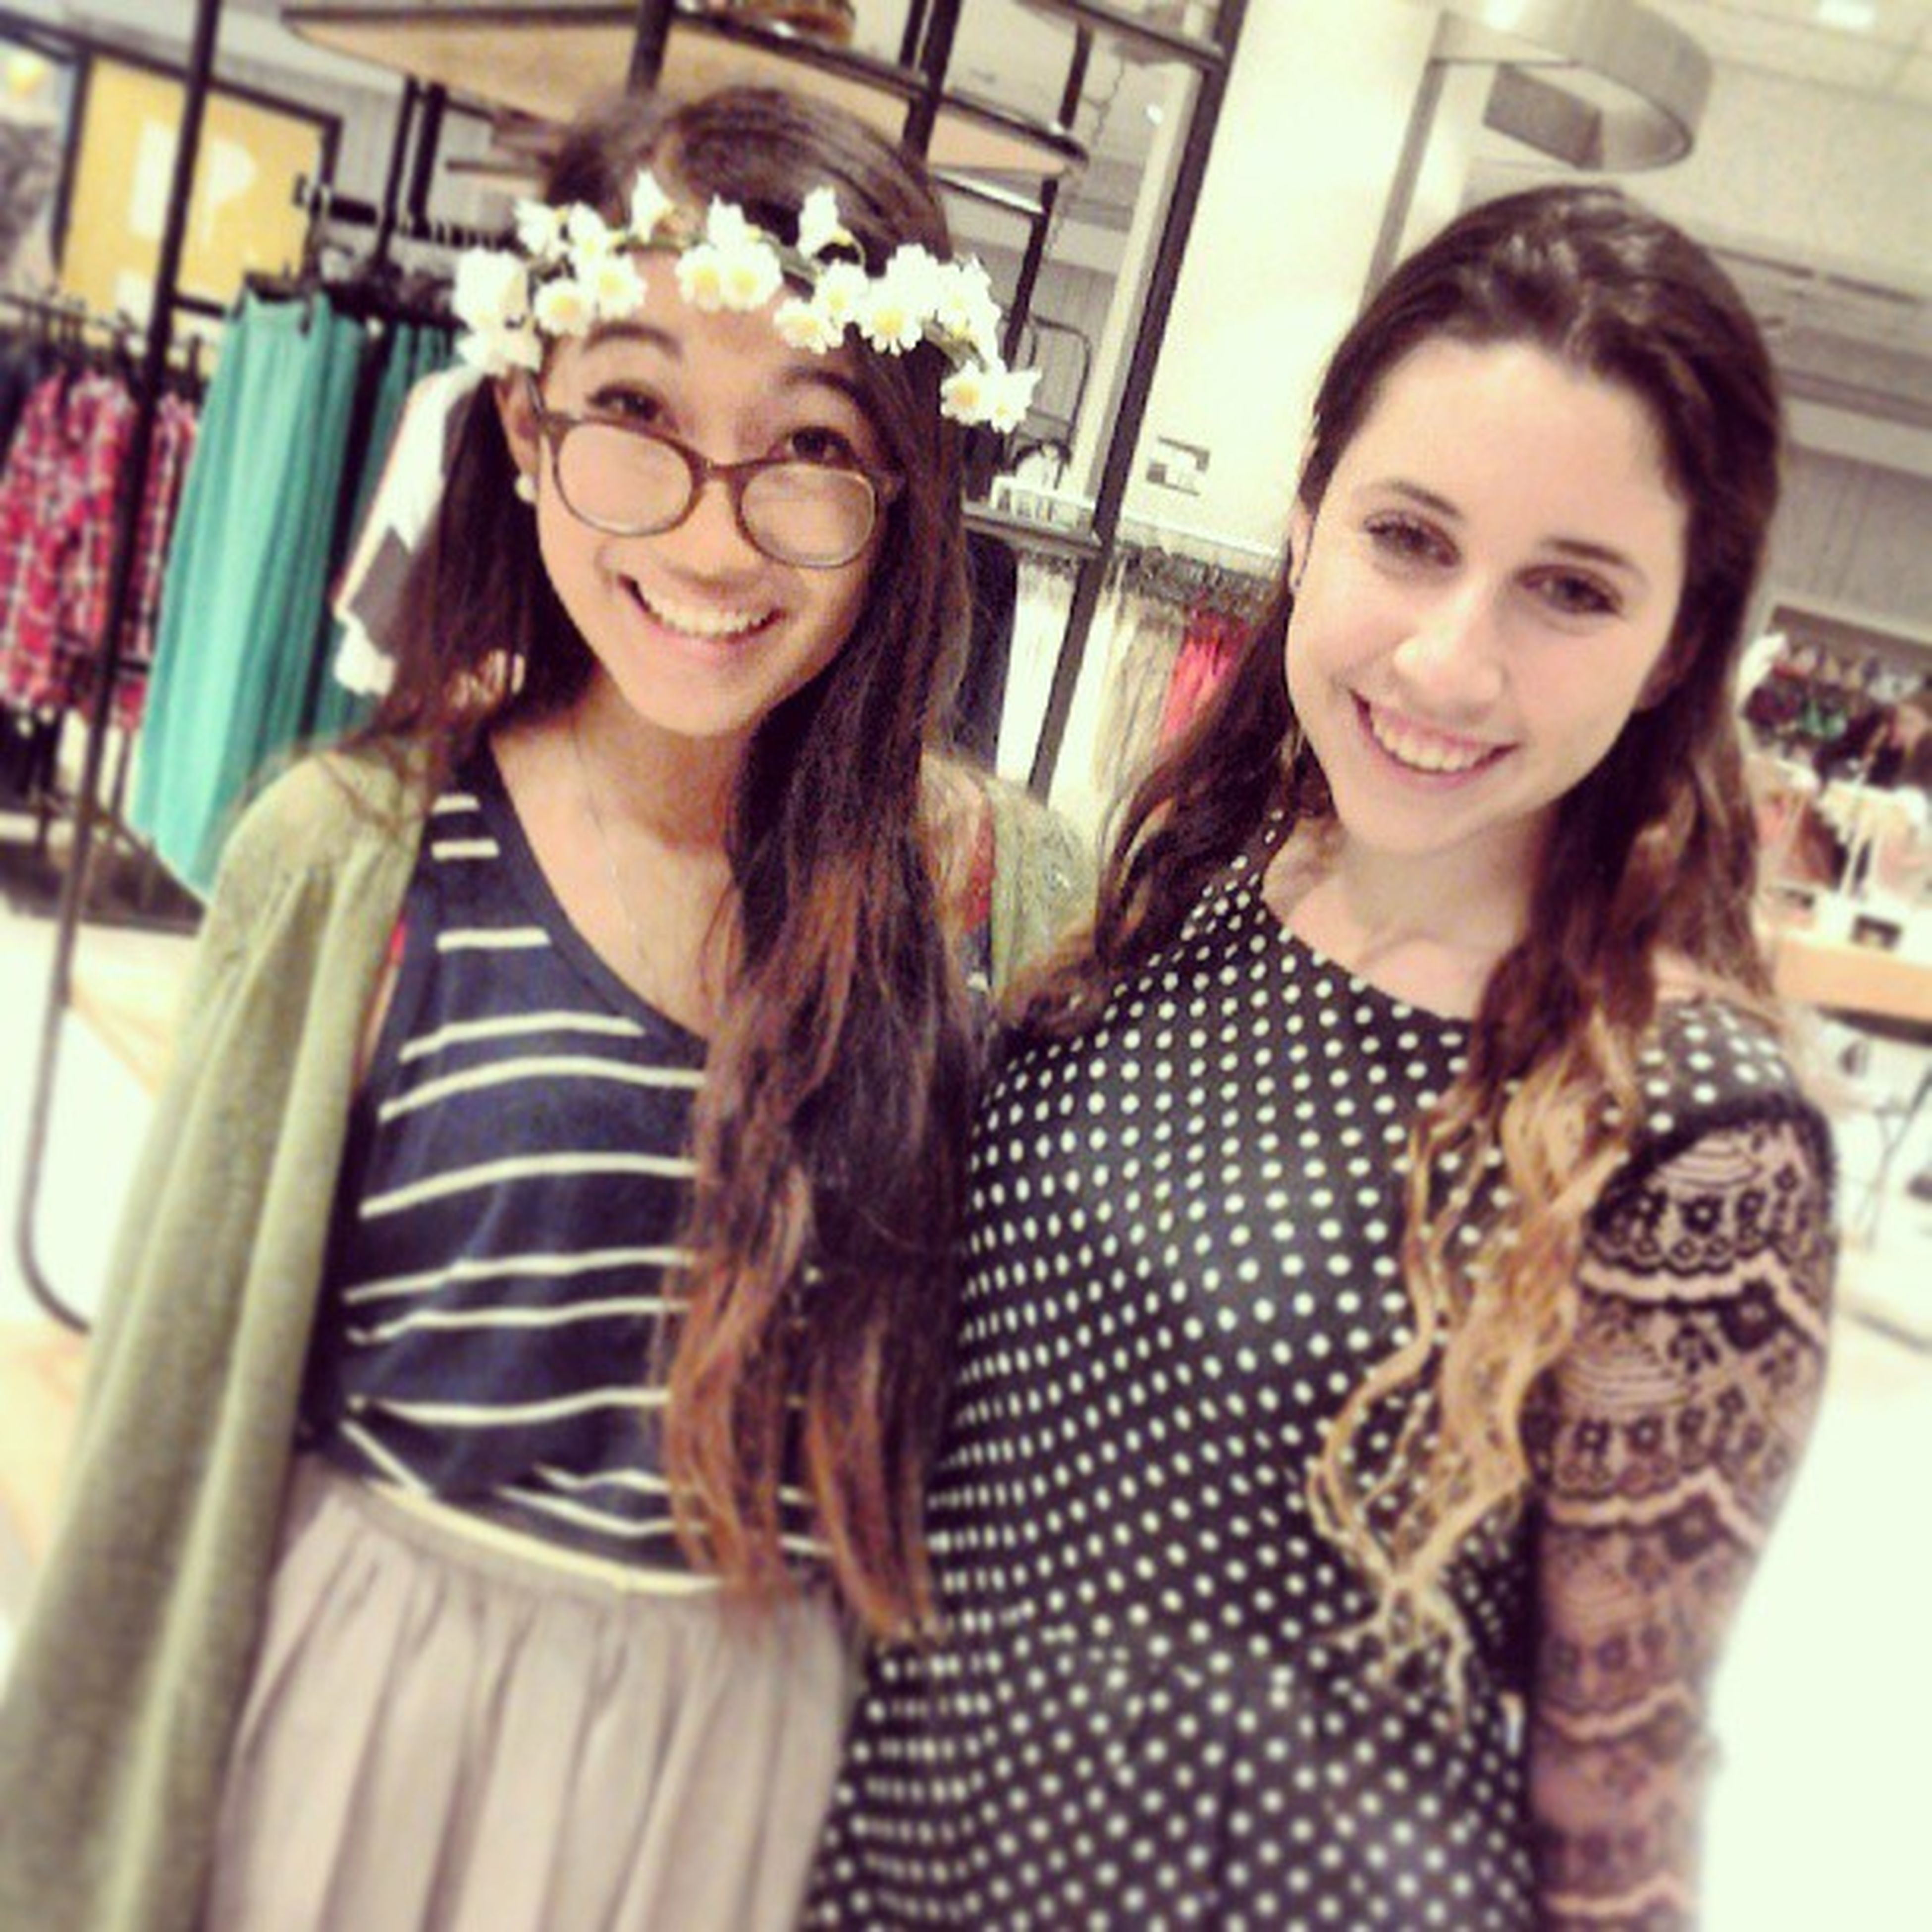 ☆ So Glad to see these two Today at Bpnordstrom ☆